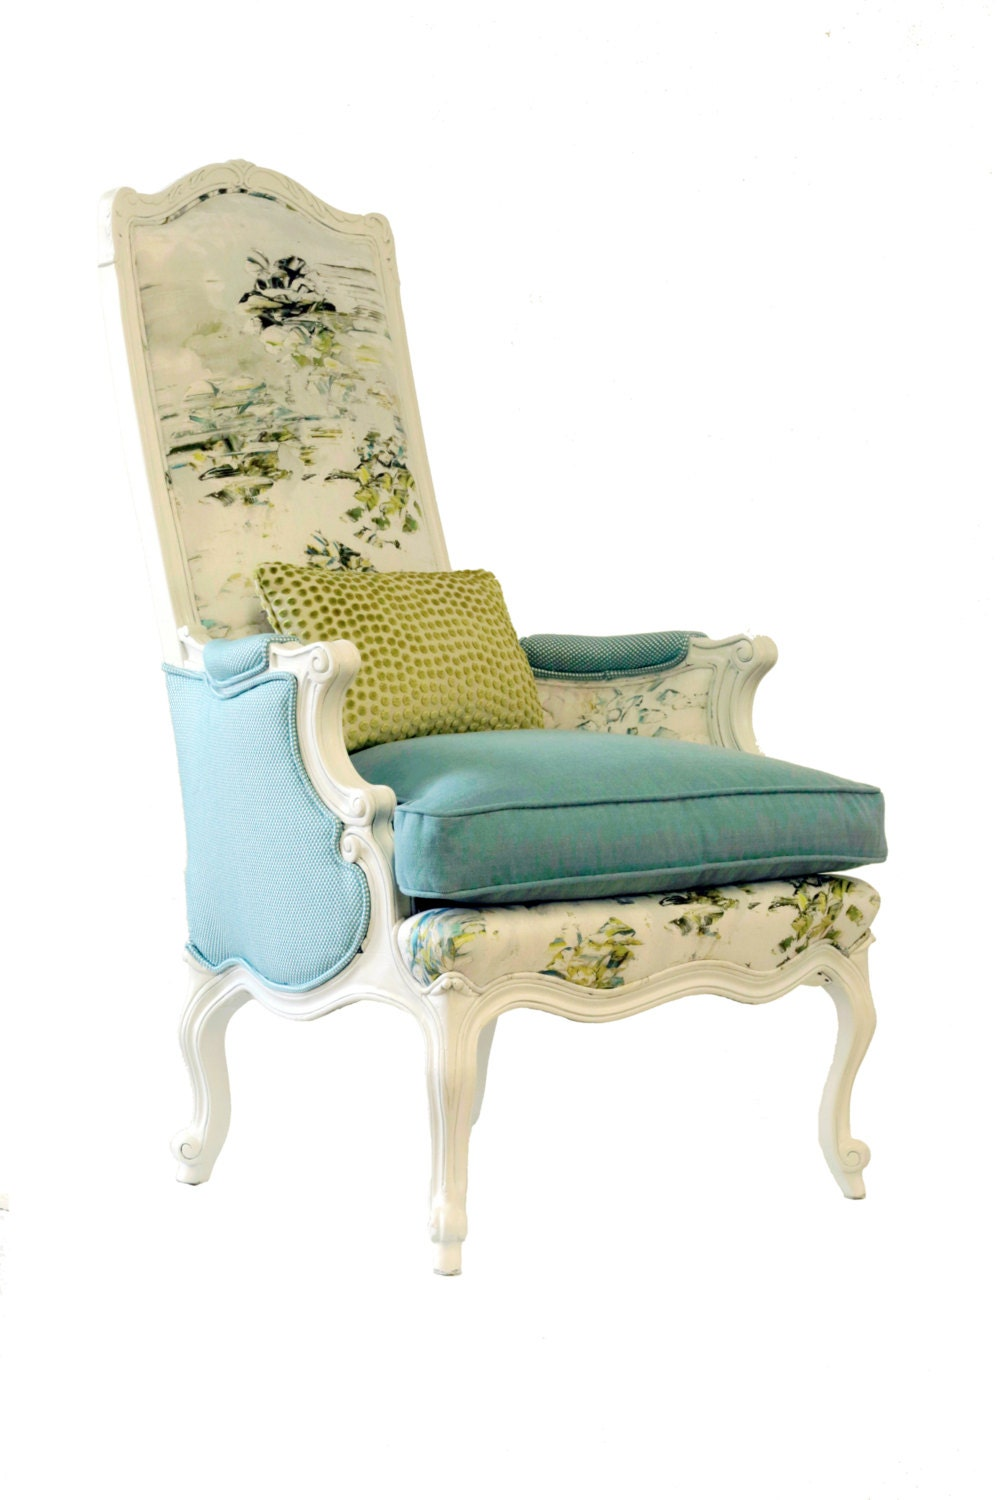 wing back accent chairs upholstered wing back avalon chair 22164 | il fullxfull.793556232 oaat